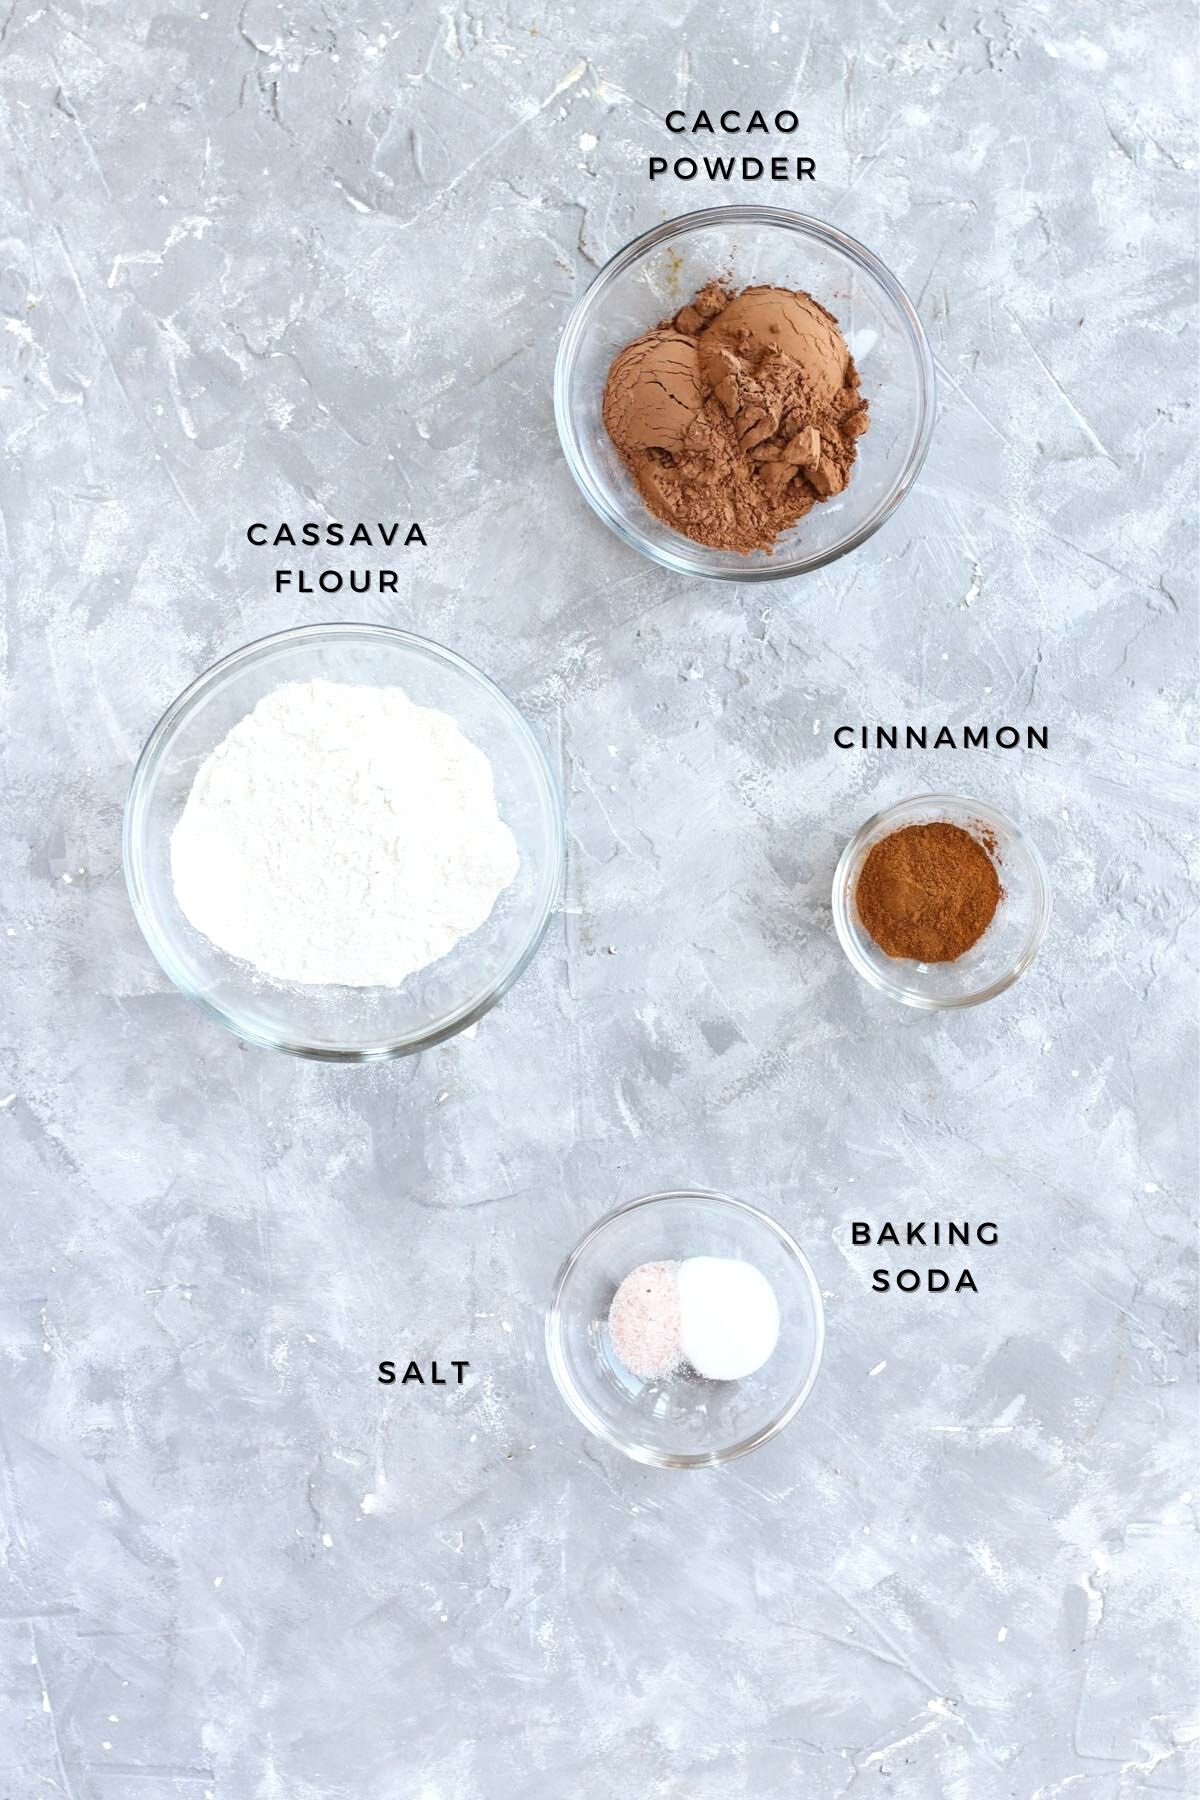 Dry ingredients measured out.